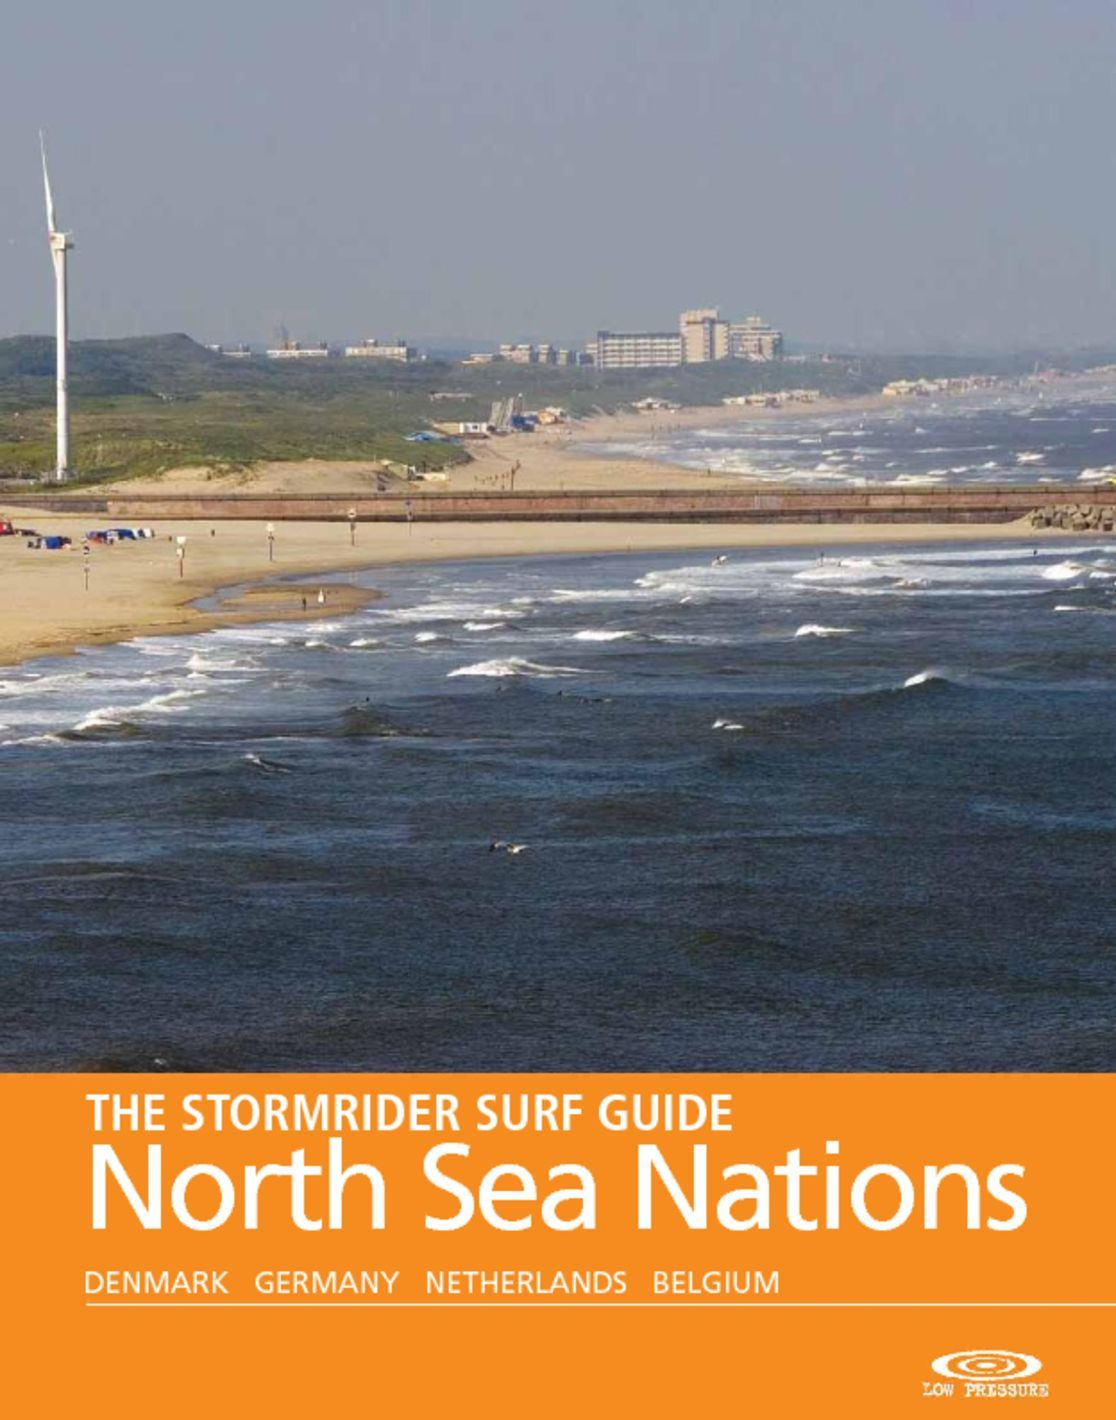 The Stormrider Surf Guide: North Sea Nations (Digital)